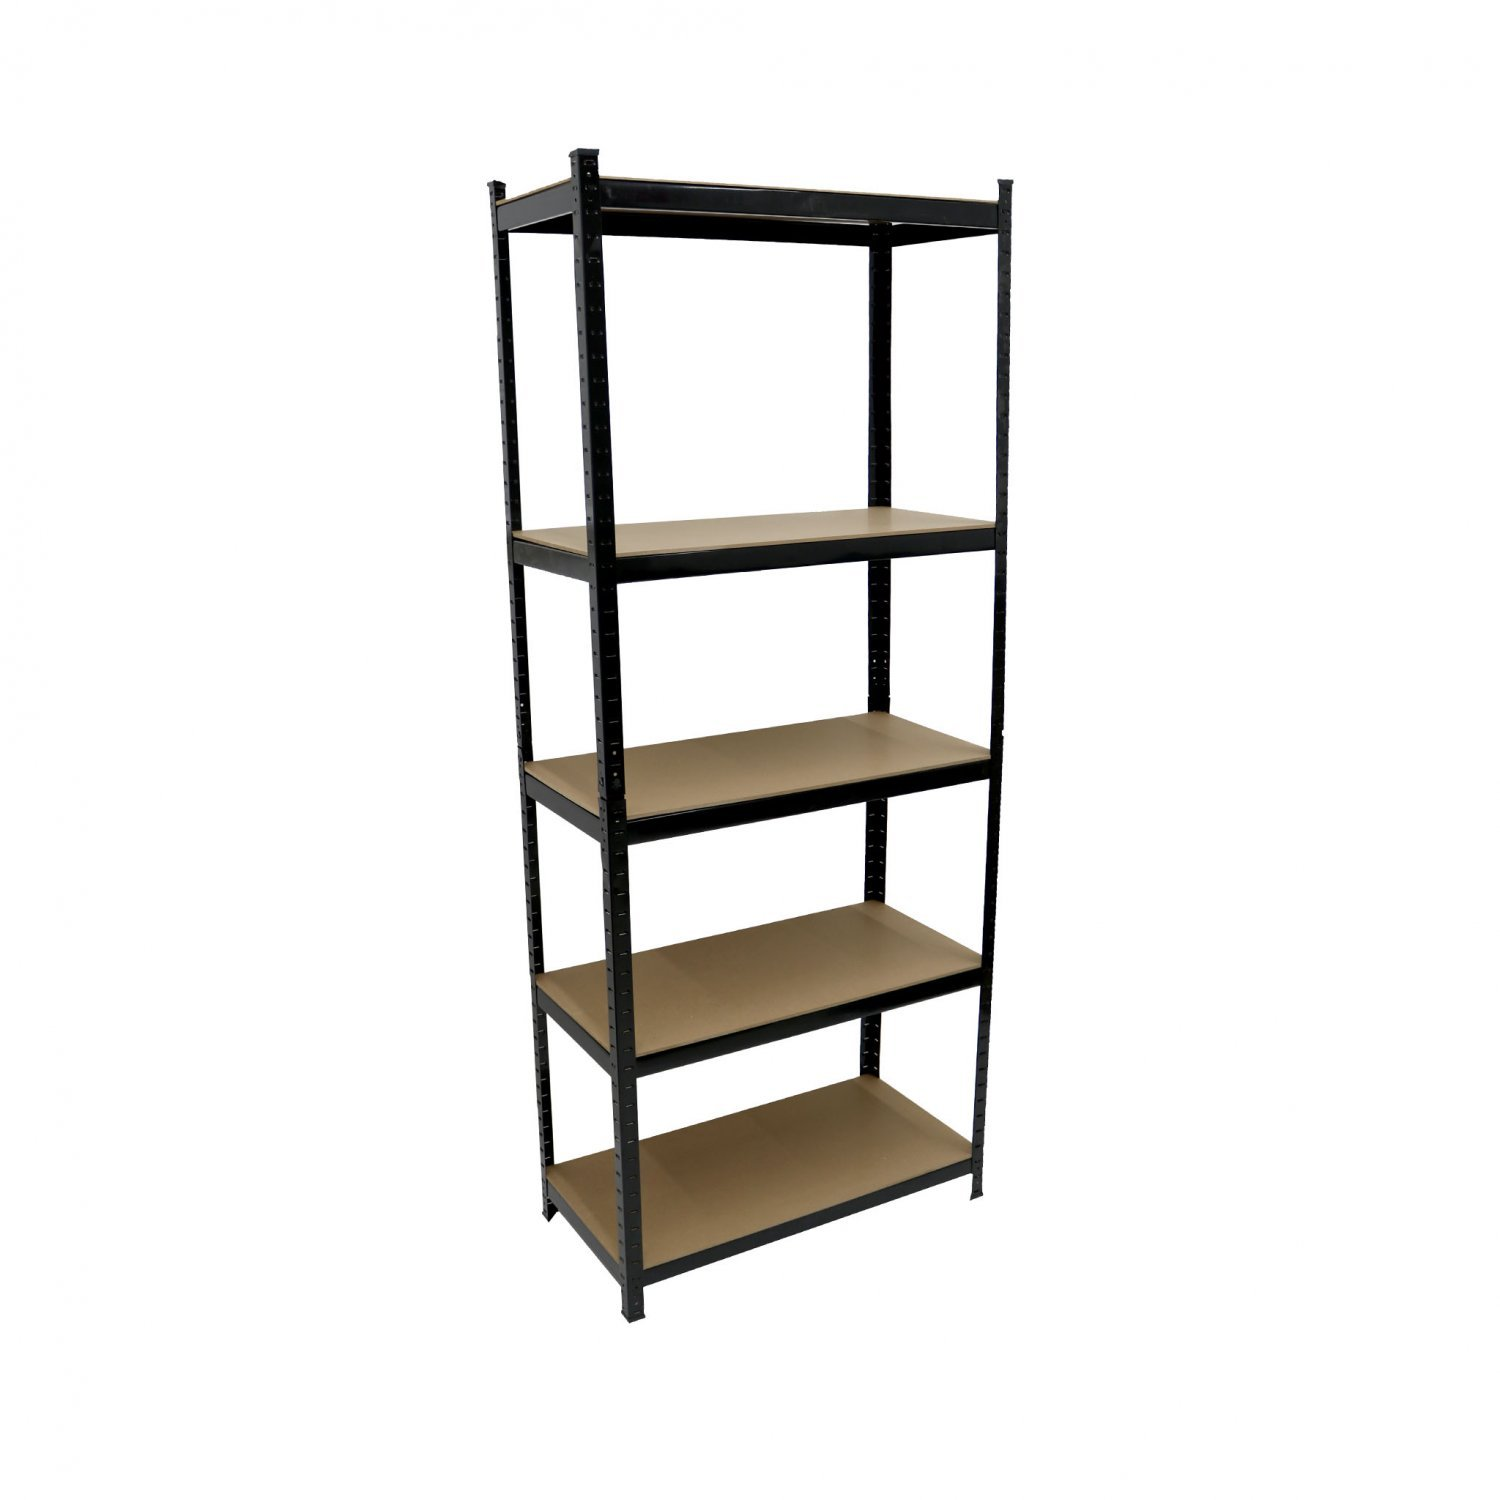 1325kg heavy duty 5 tier metal storage garage shelving. Black Bedroom Furniture Sets. Home Design Ideas